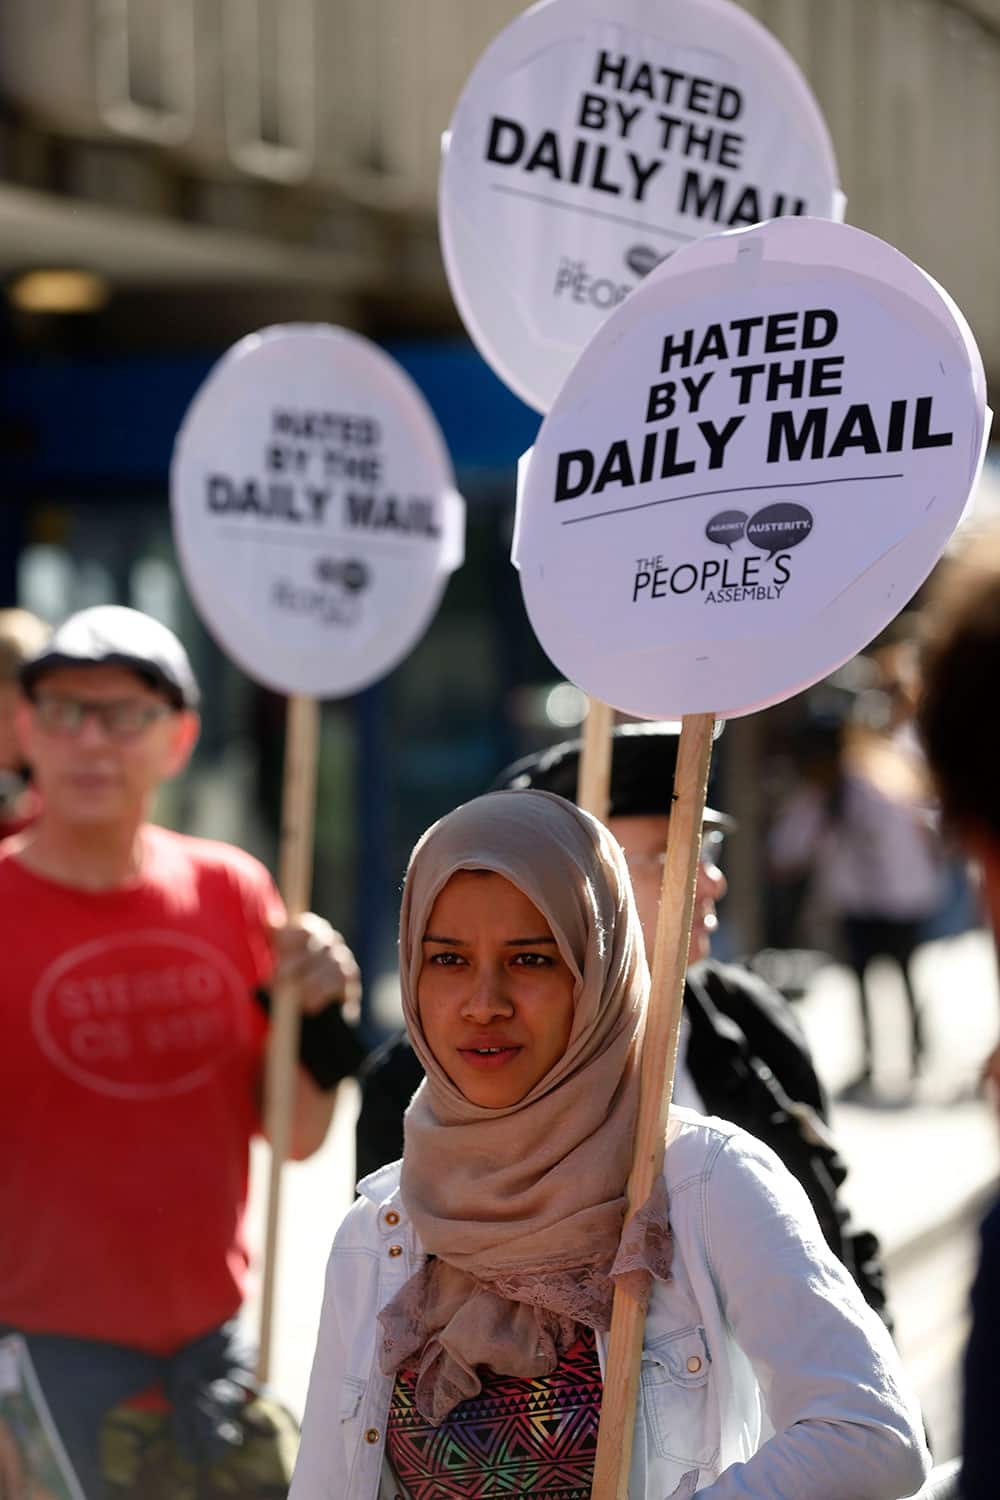 A woman displays a placard, during a `Daily Mail Hates Britain` protest, organised by the People`s Asssembly, outside the Daily Mail newspaper headquarters, in London.